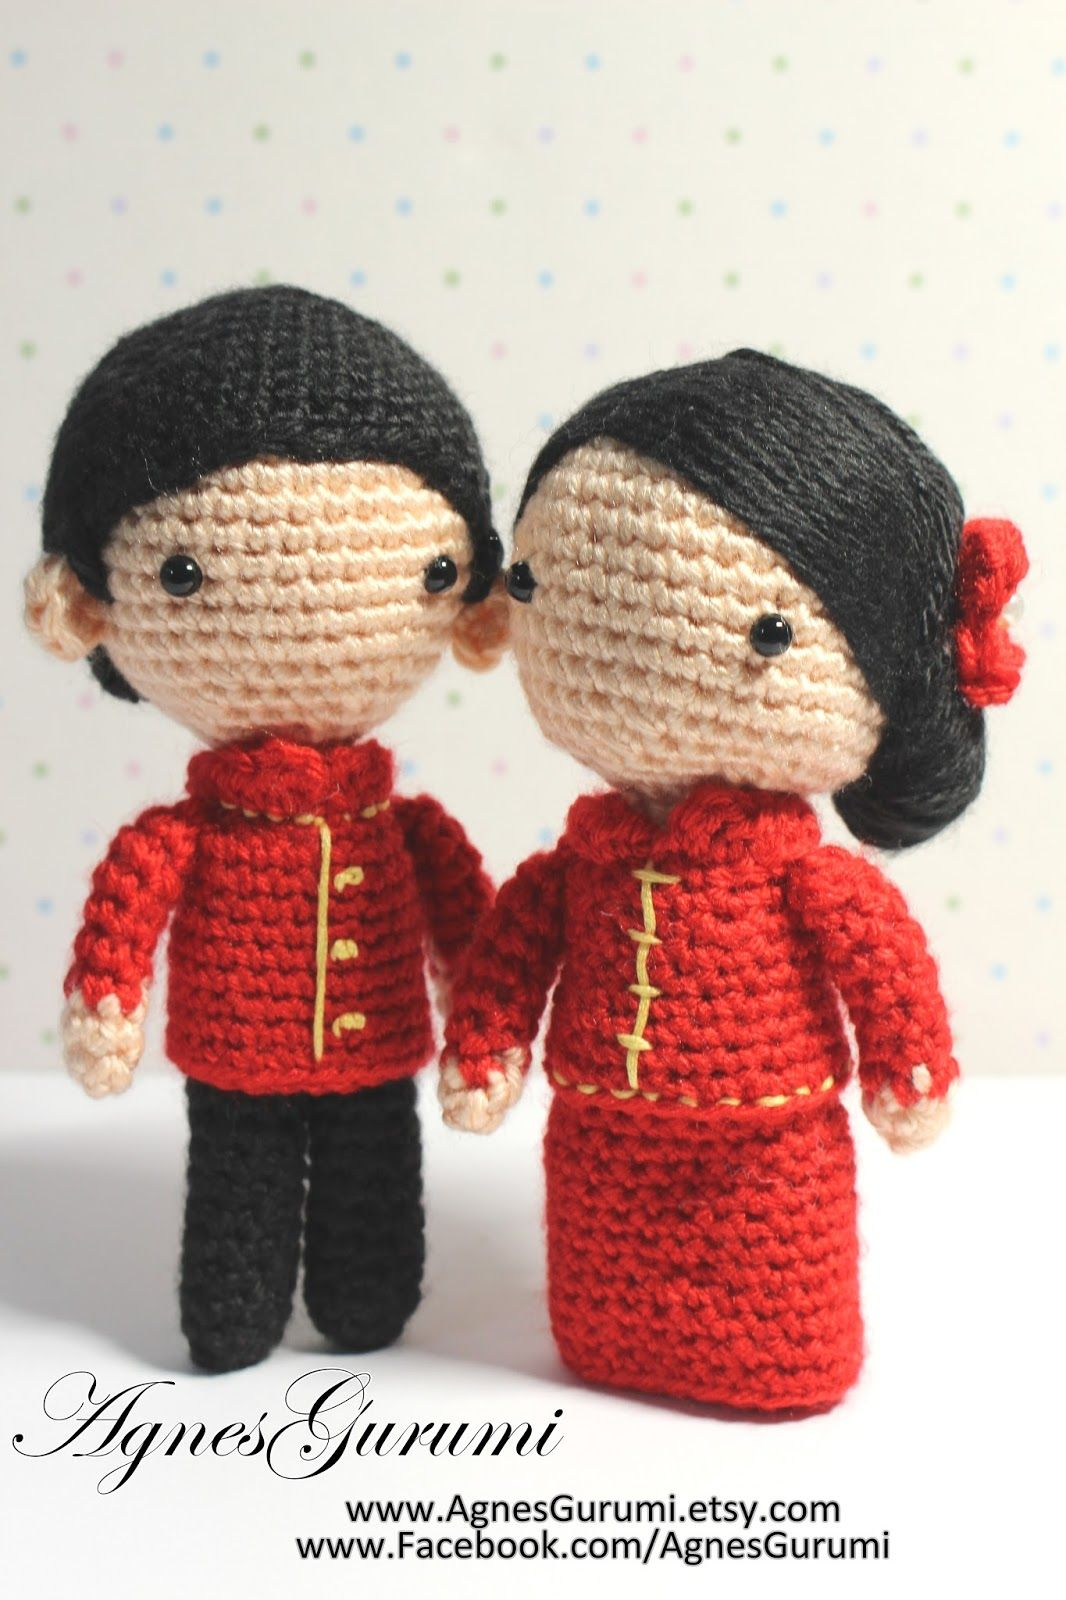 Amigurumi Crochet Wedding Couple Chinese Traditional Red Costume Doll Groom Bride Stuffed Toy Handmade Made To Order